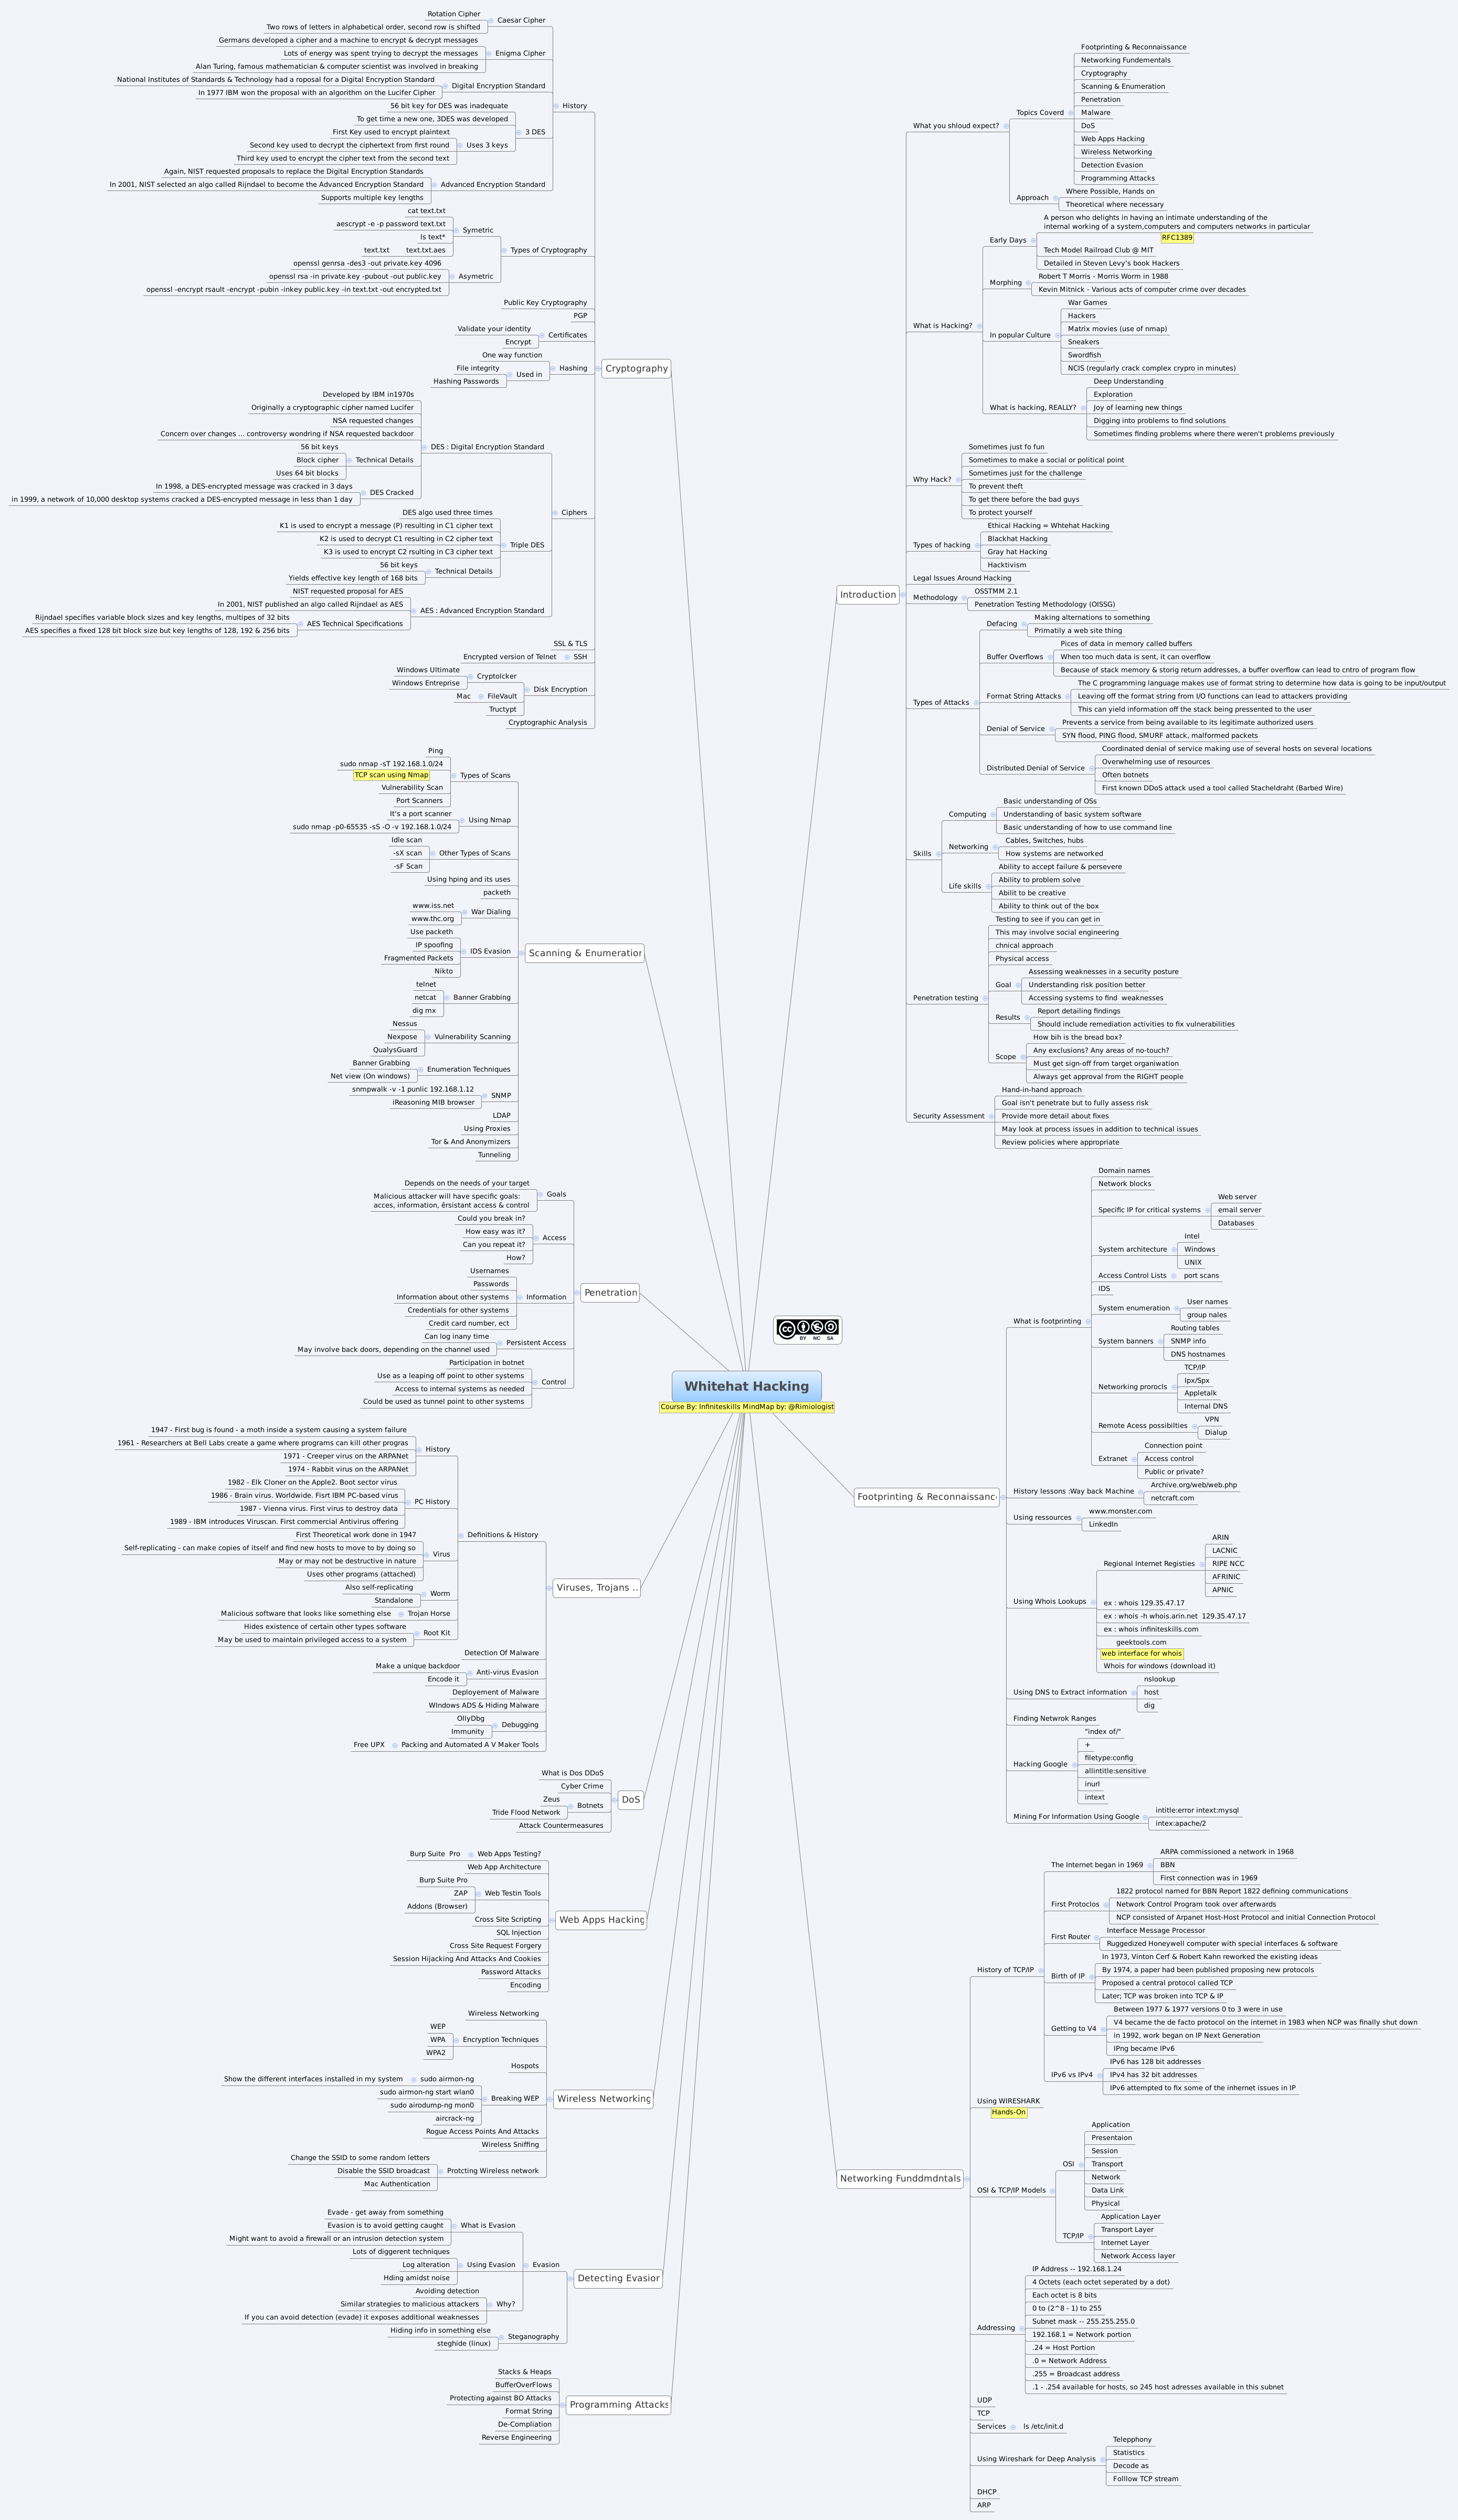 Whitehat Hacking - XMind - Mind Mapping Software